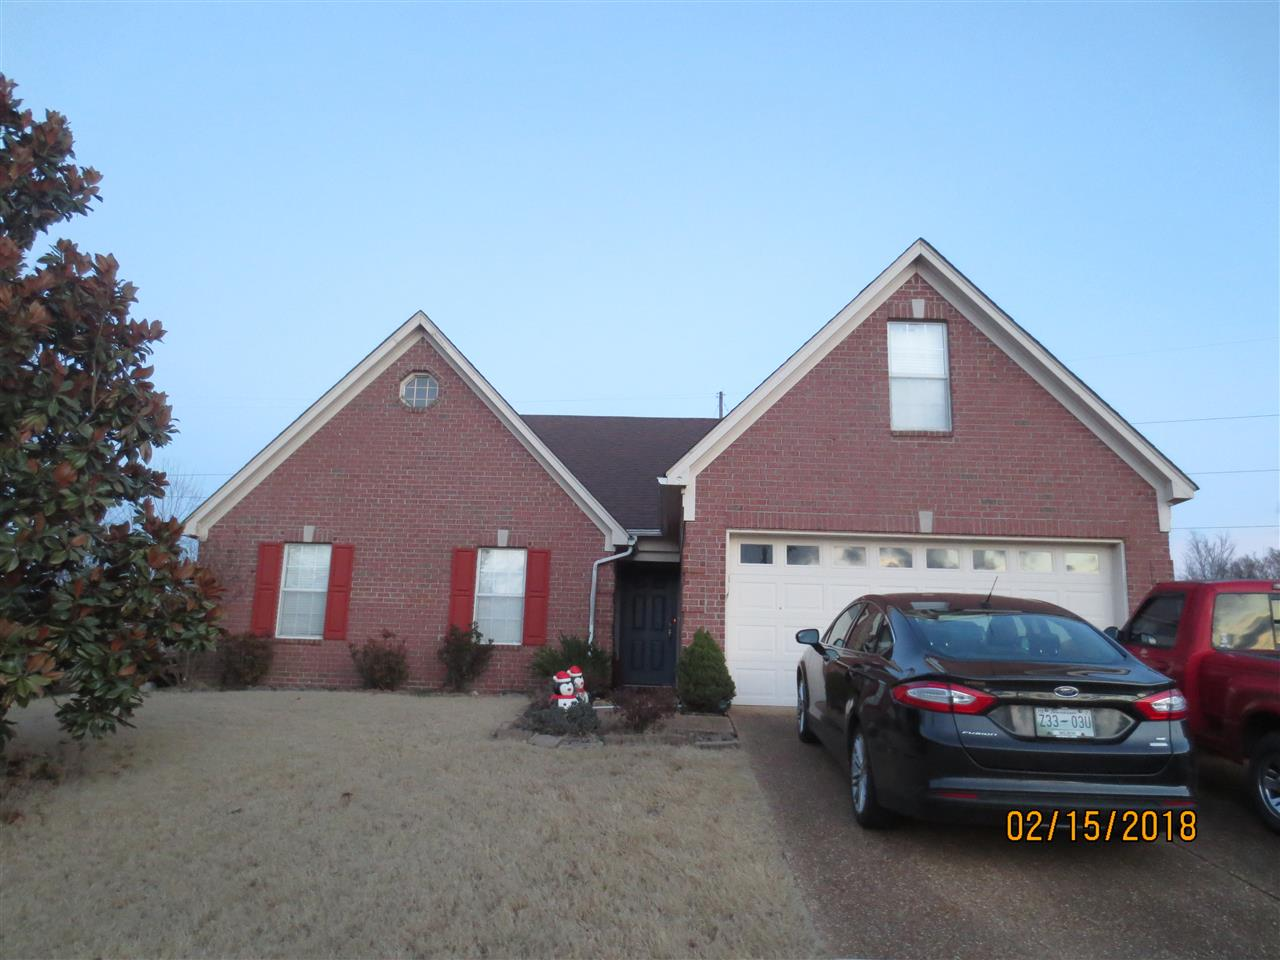 This is a lovely property located in Oakland, TN. It has four spacious bedrooms and two full baths. The kitchen is large and great room has tons of natural light! Includes a fireplace to keep you warm on those cold winter nights. Complete with large backyard. Plenty of room for kids or pets to run and play. Near schools, shopping, and entertainment. Call us and come take a look today! You'll fall in love with this home!